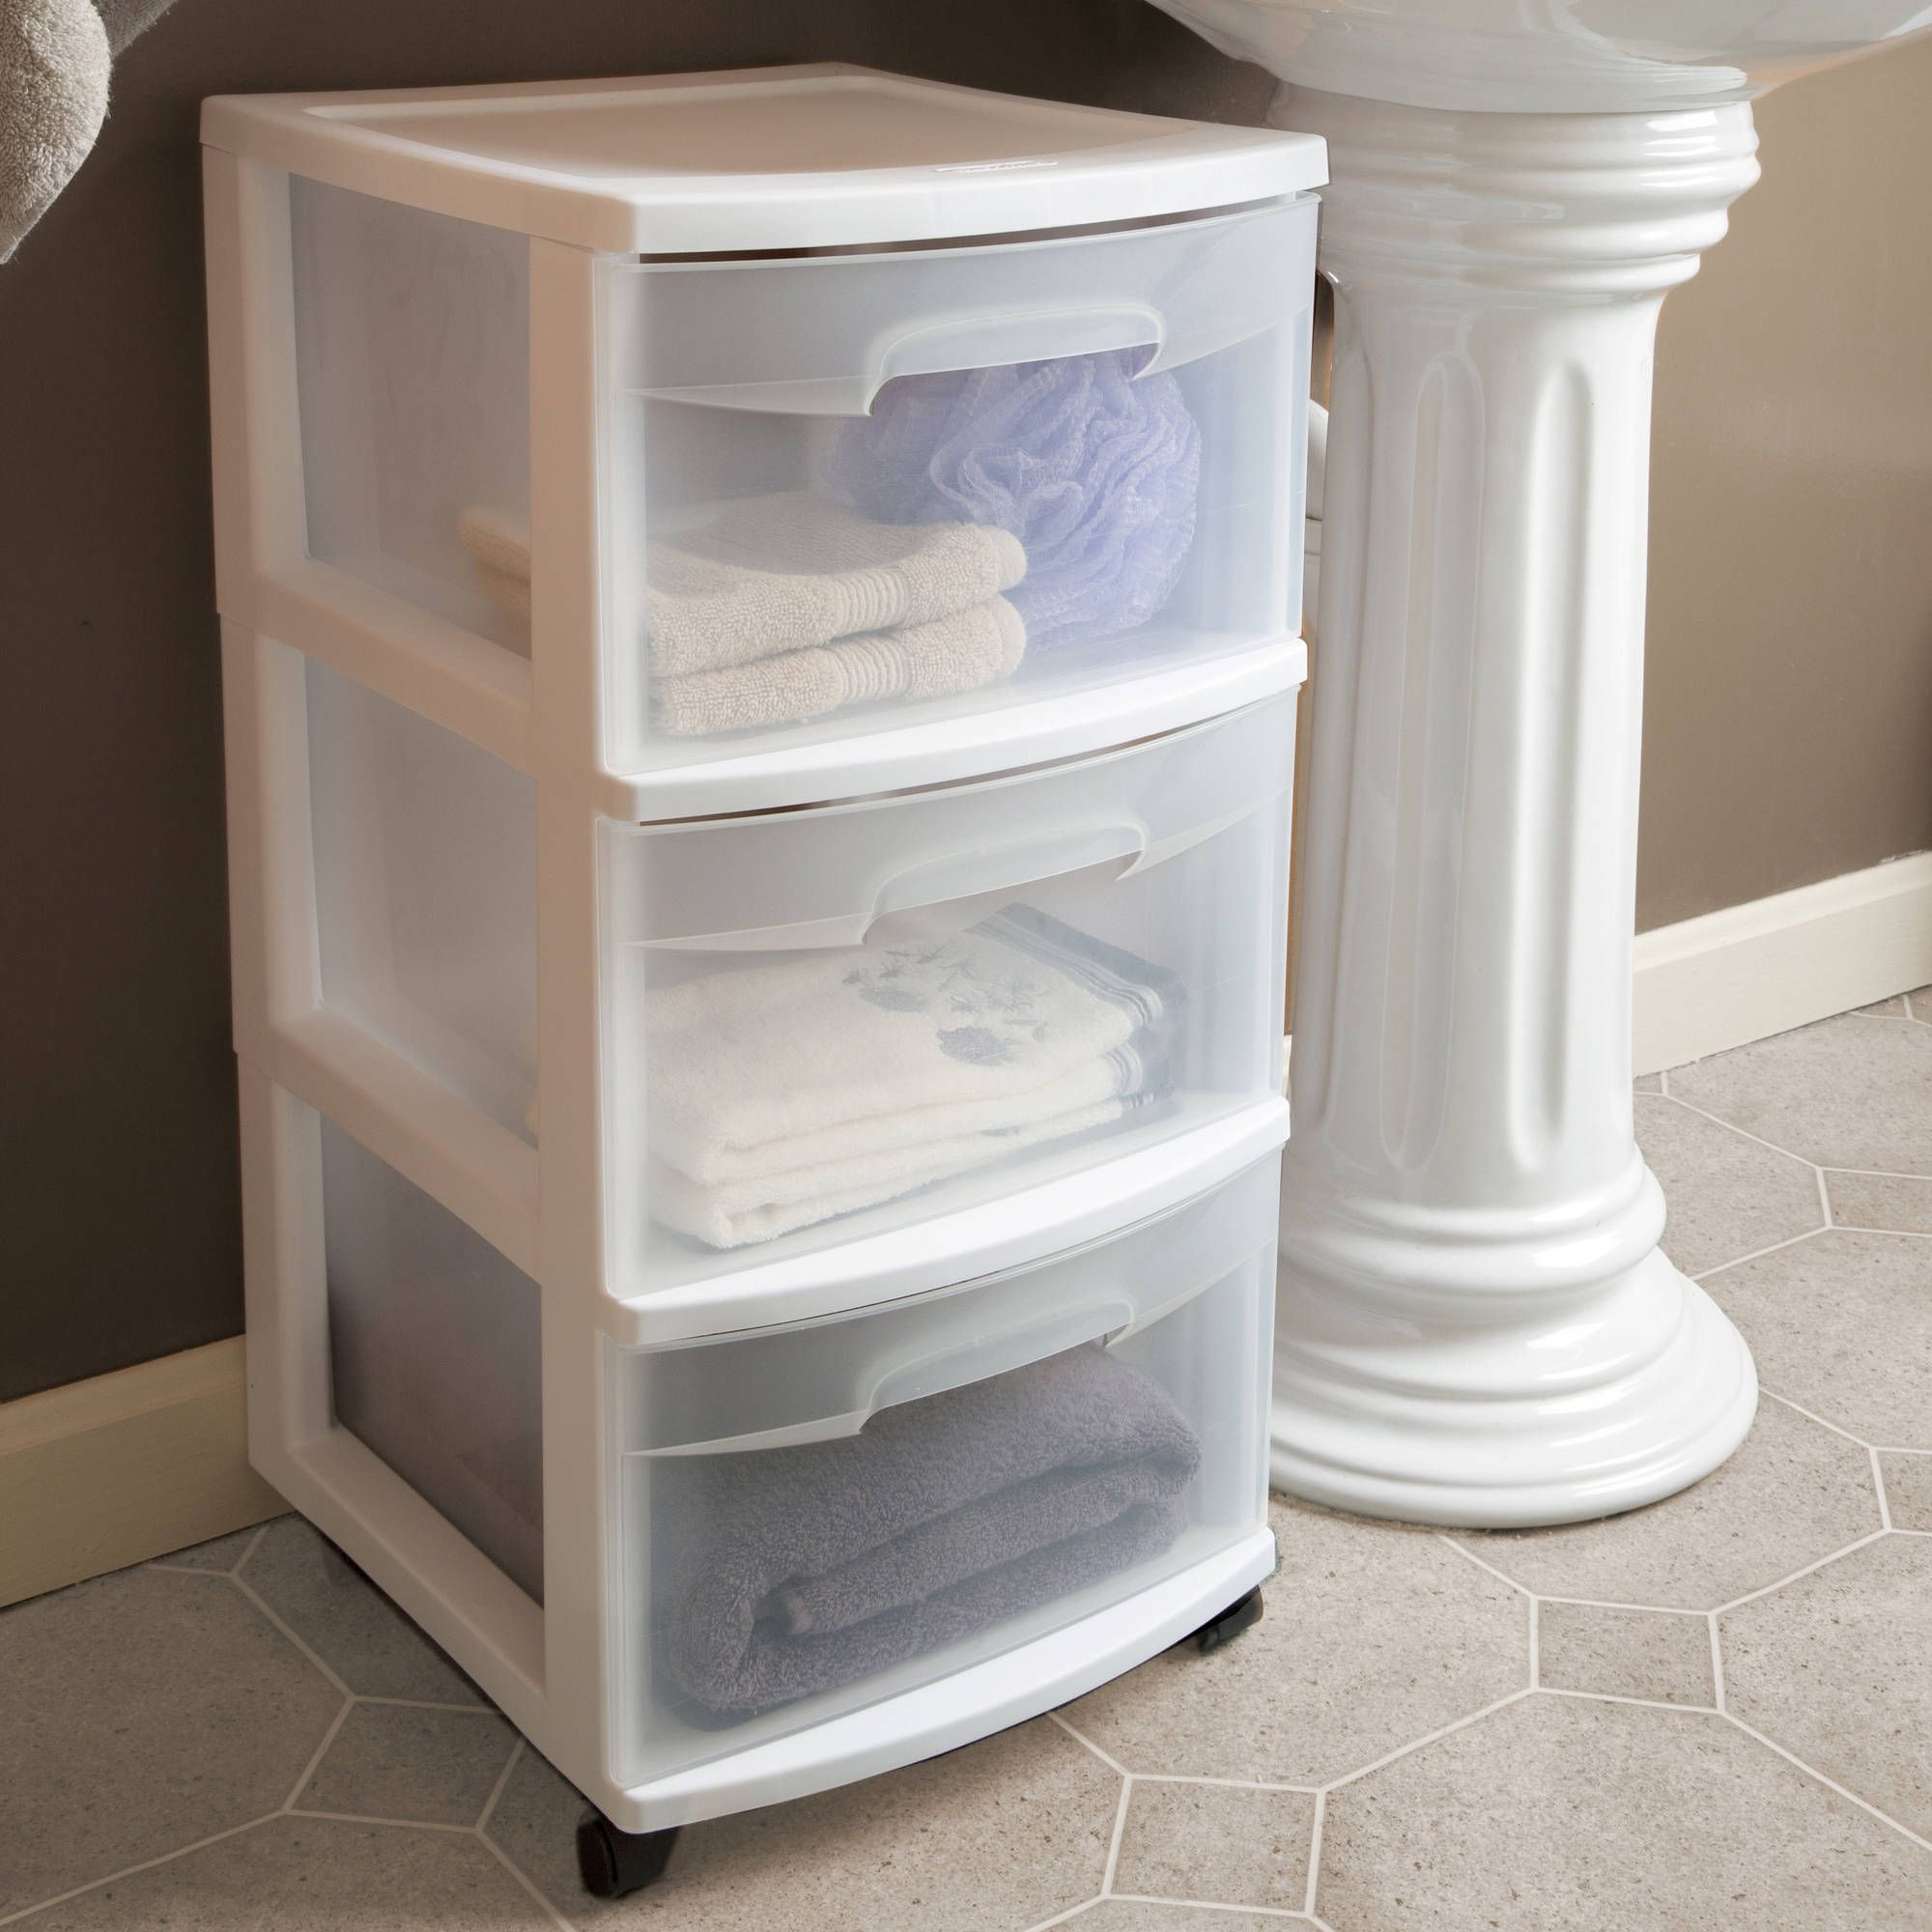 2 Drawer Acrylic Organizer In 2020 Plastic Storage Cabinets Plastic Storage Drawers Bathroom Drawer Storage